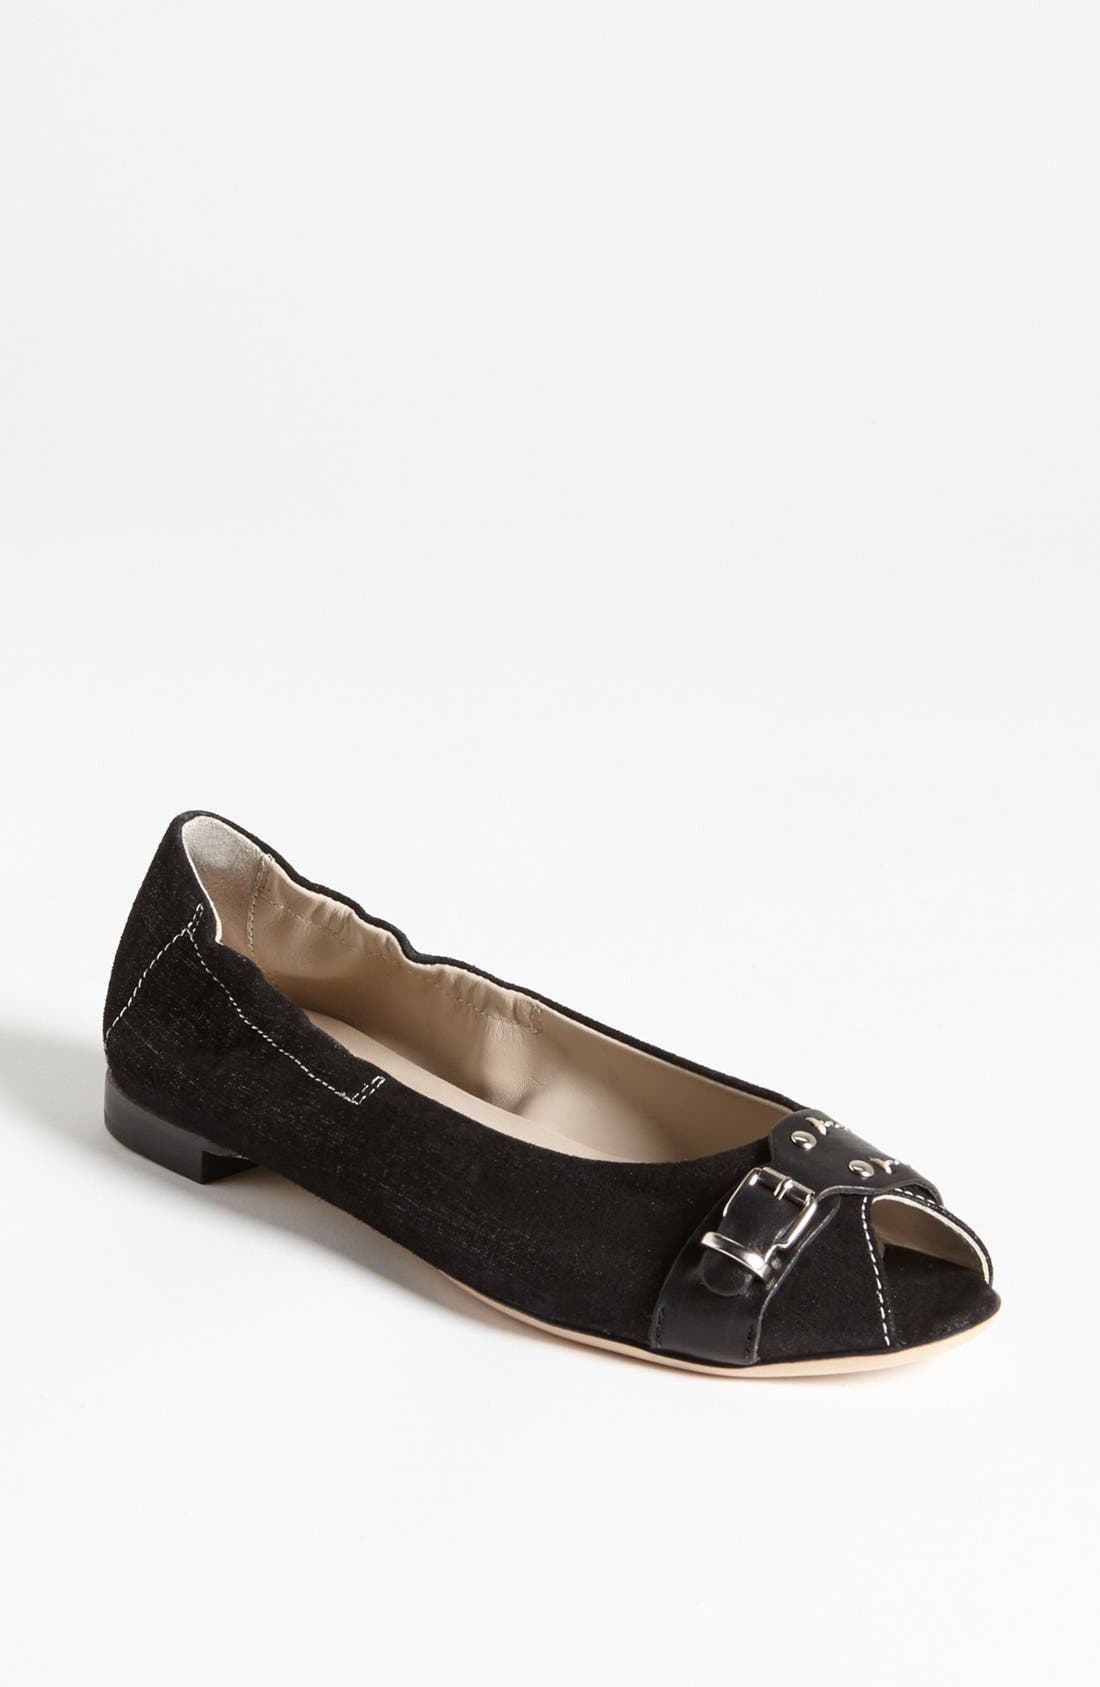 Alternate Image 1 Selected - Attilio Giusti Leombruni Peep Toe Flat